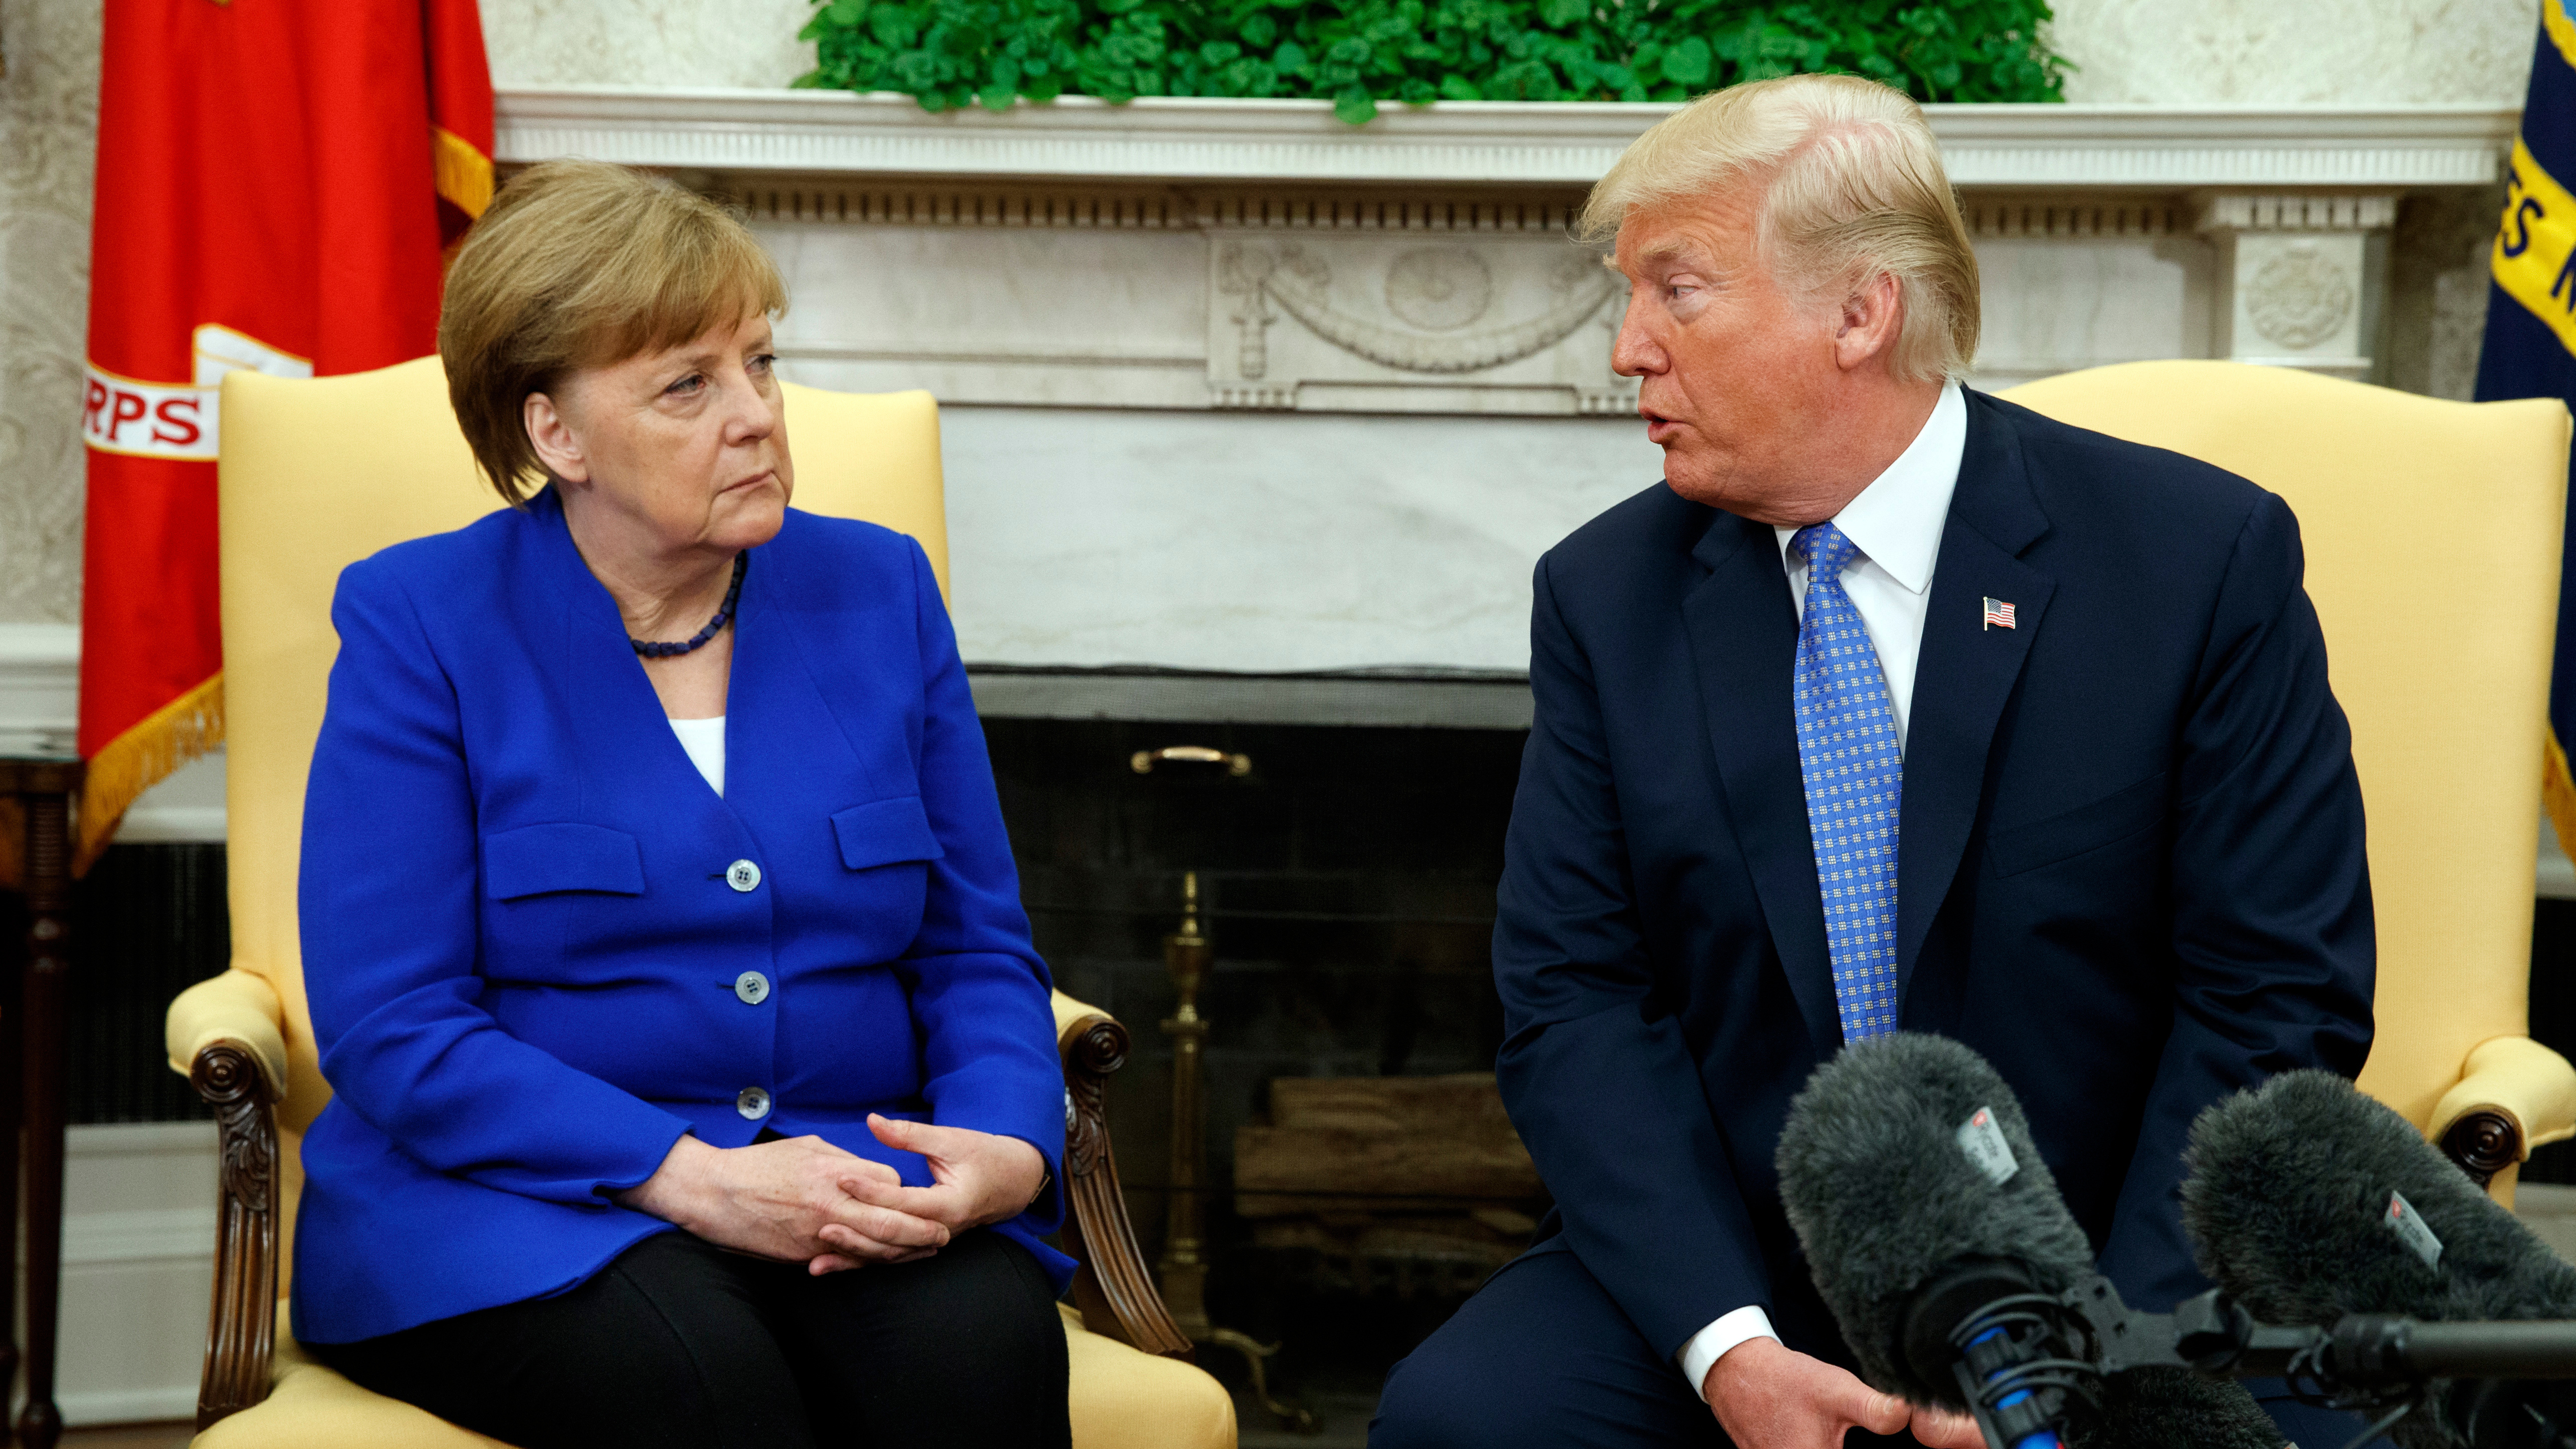 President Donald Trump meets with German Chancellor Angela Merkel in the Oval Office of the White House Friday.